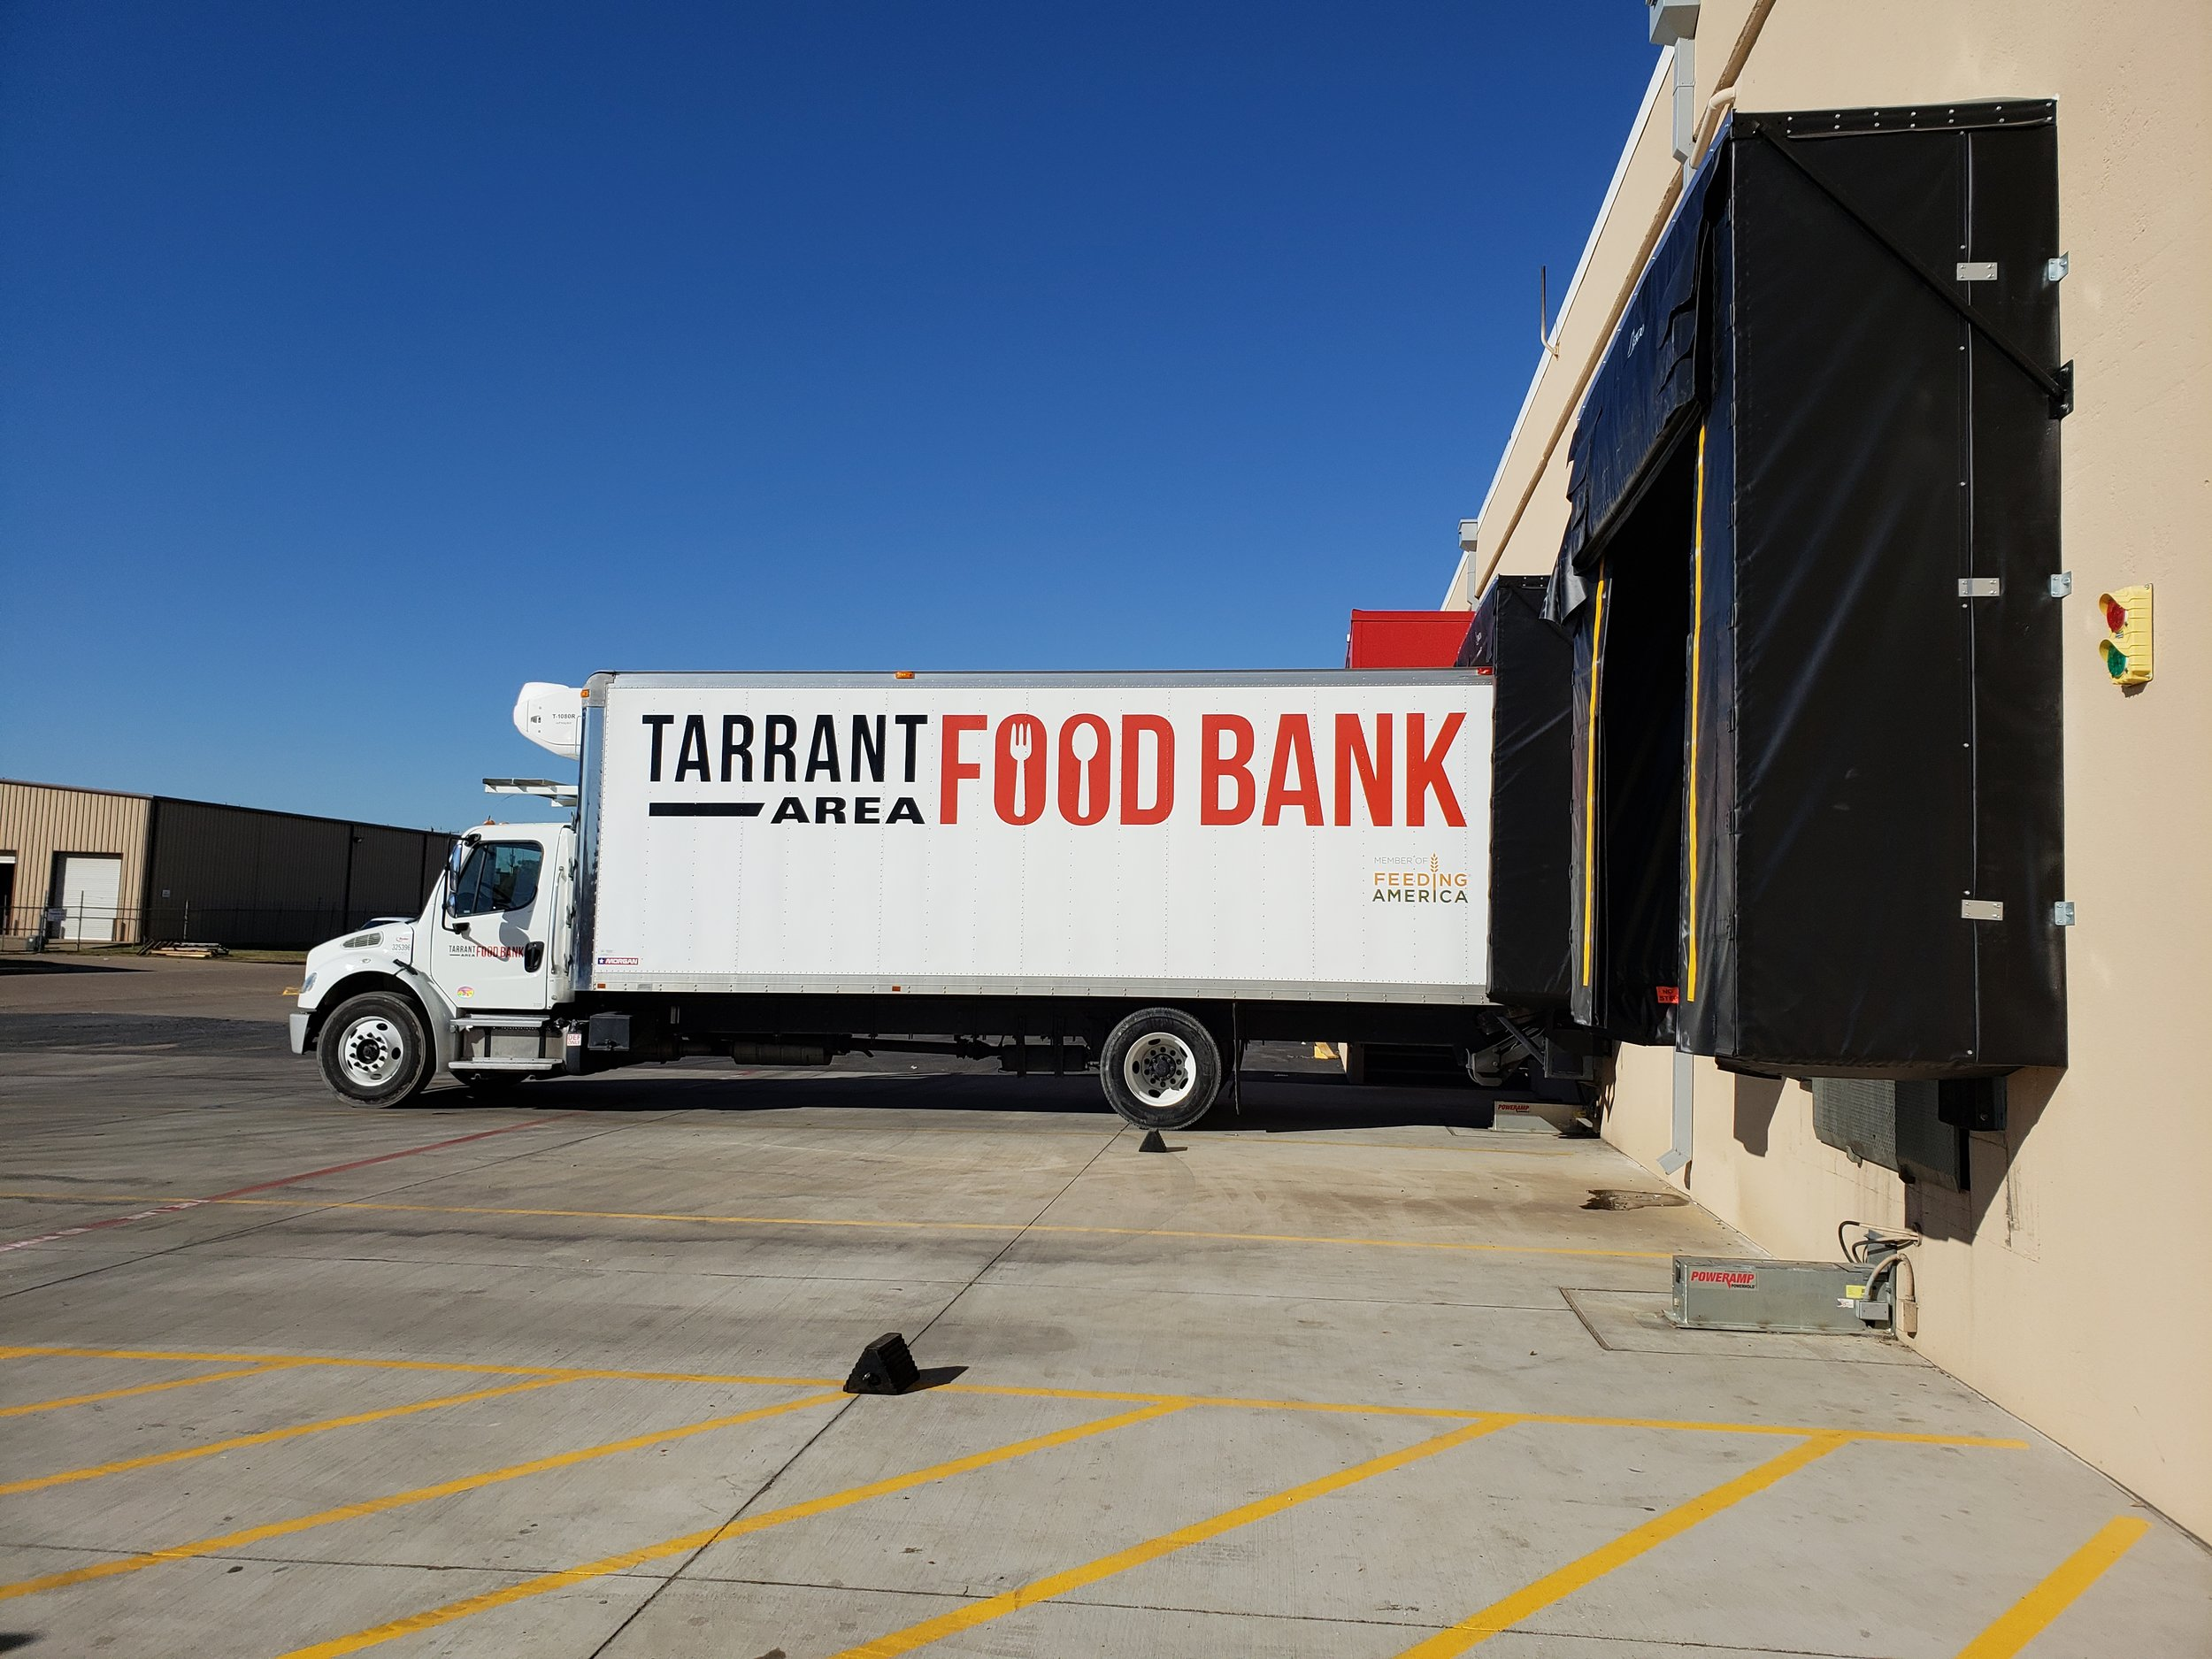 Tarrant Area Food Bank Truck.jpg